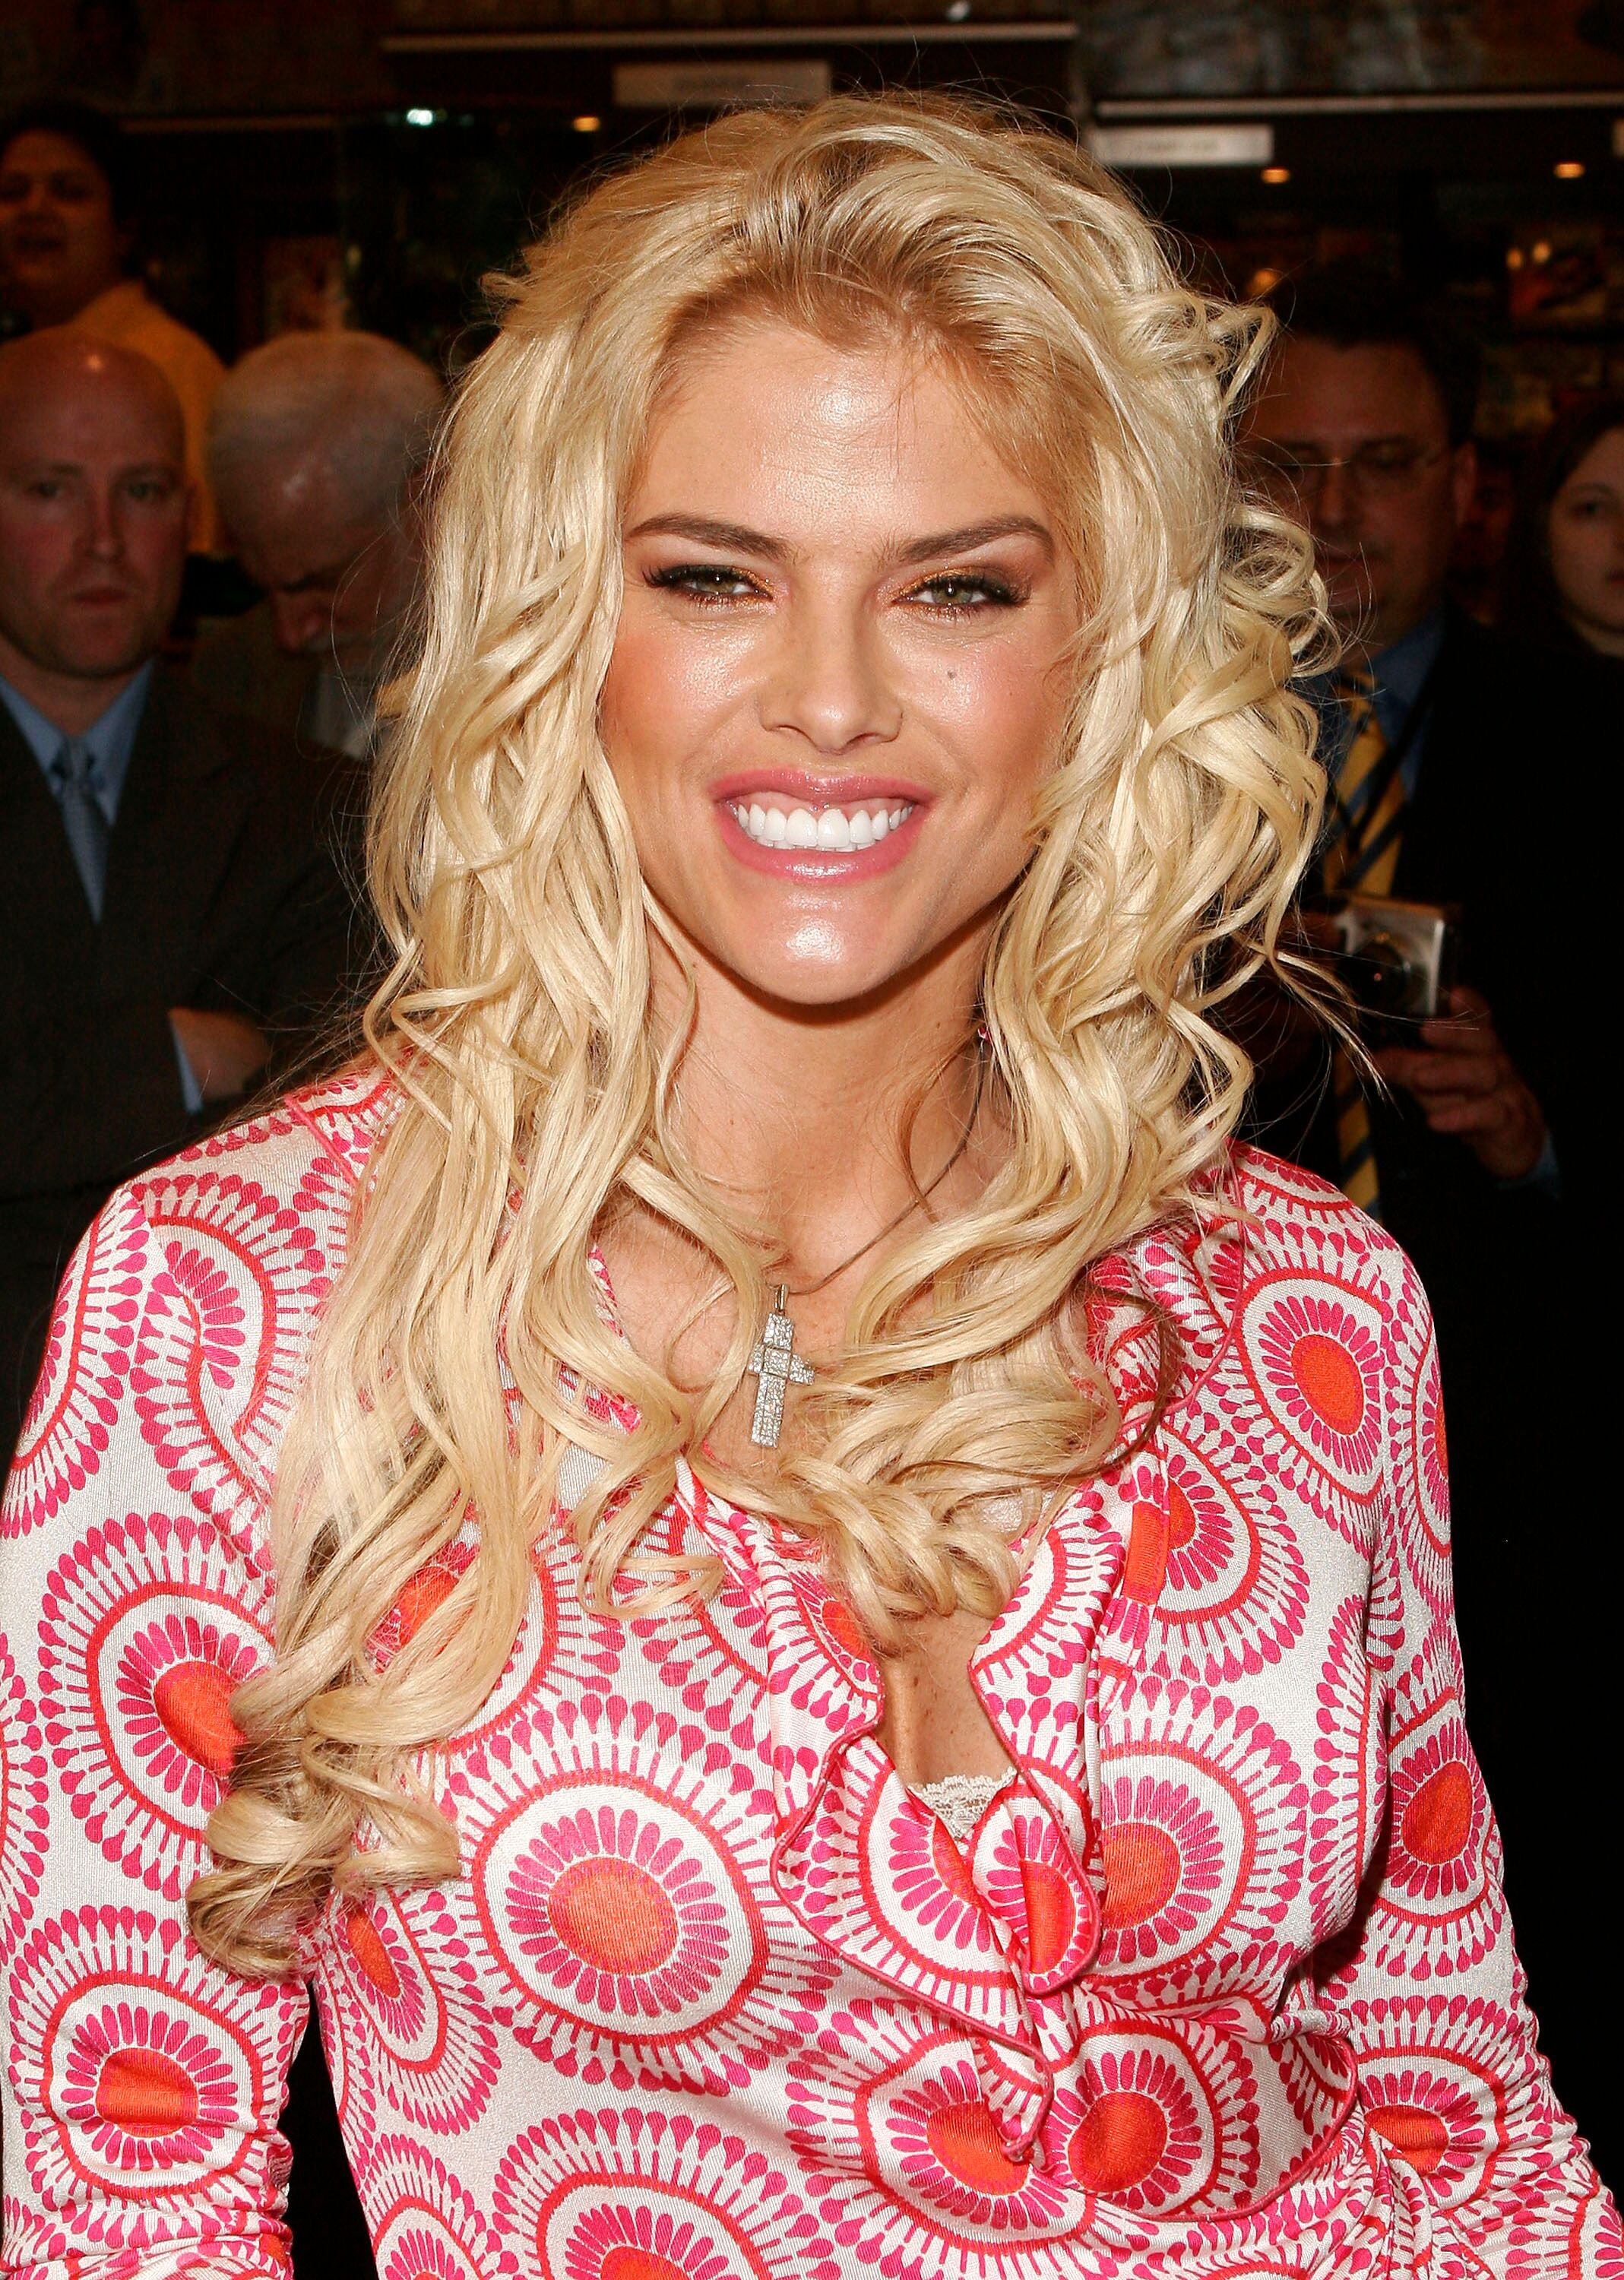 Anna Nicole Smith le 7 avril 2005 à New York | Photo: Getty Images